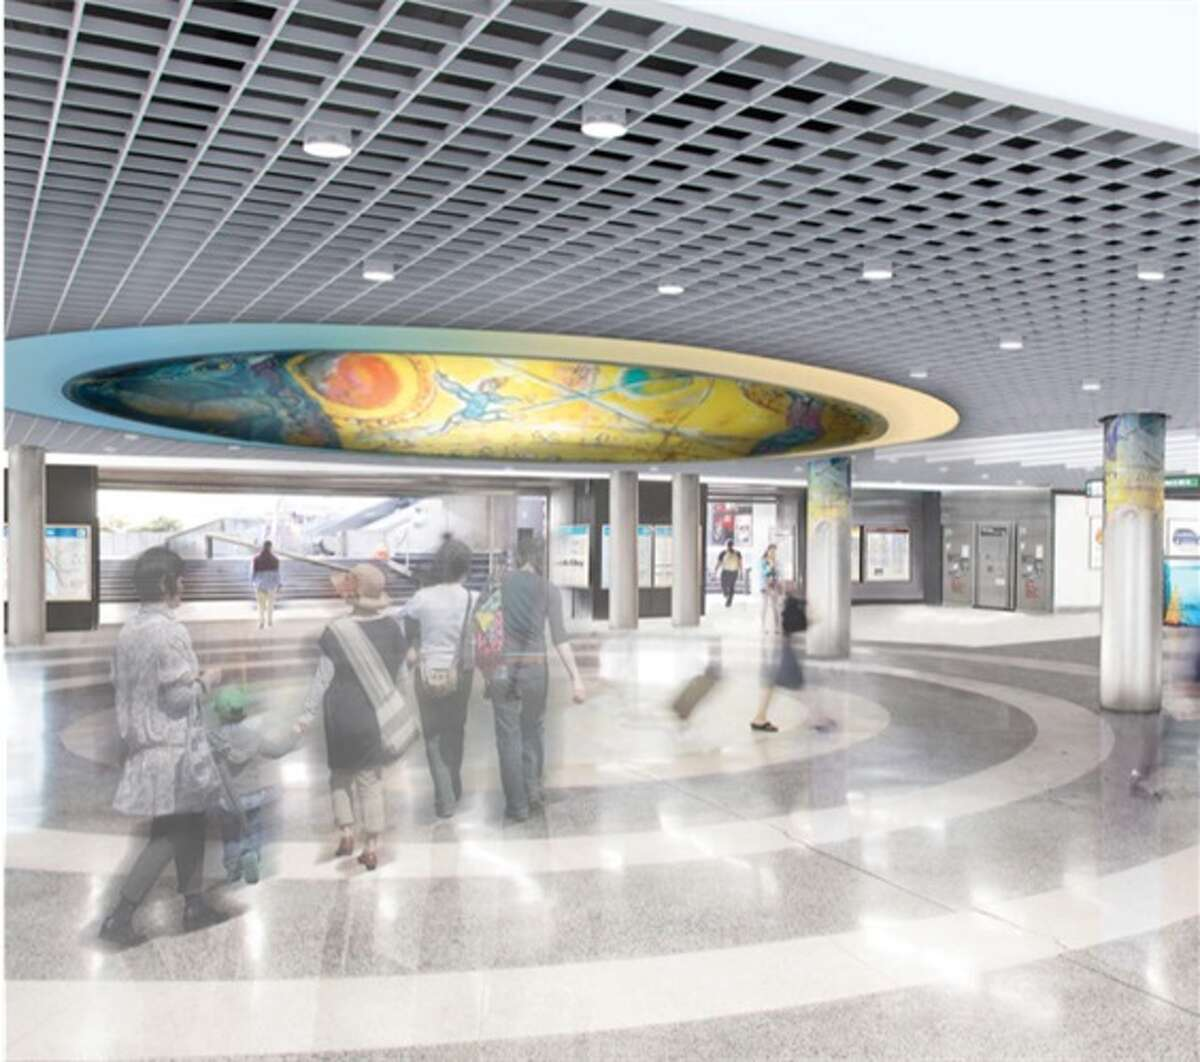 Powell Street BART Station ceiling concept. Completion is currently set for Fall/Winter 2019.